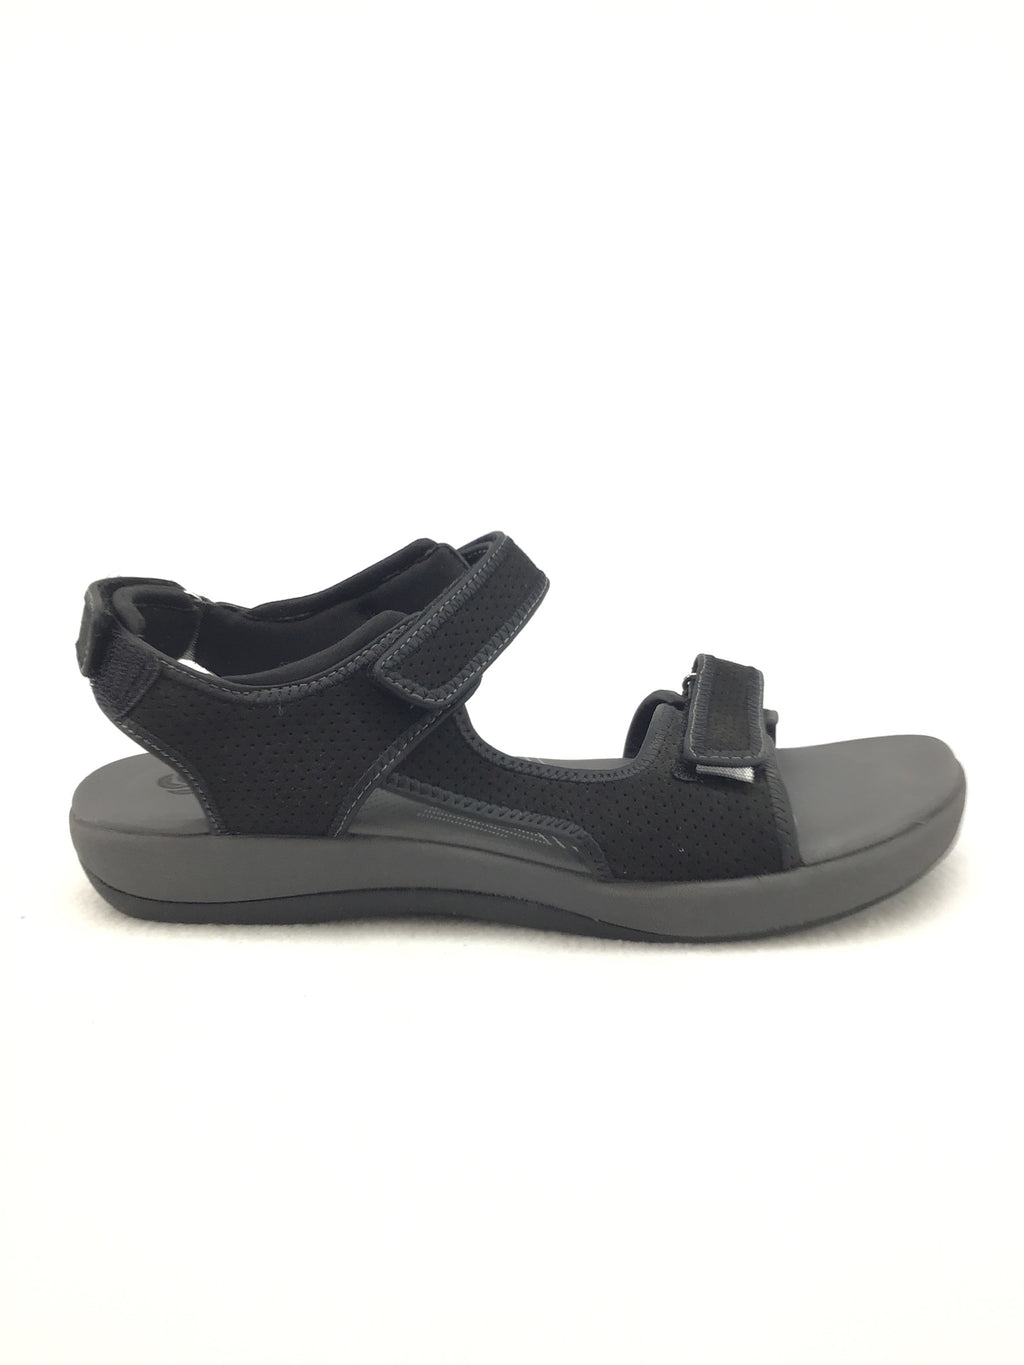 Cloudsteppers By Clarks Comfort Sandals Size 10M